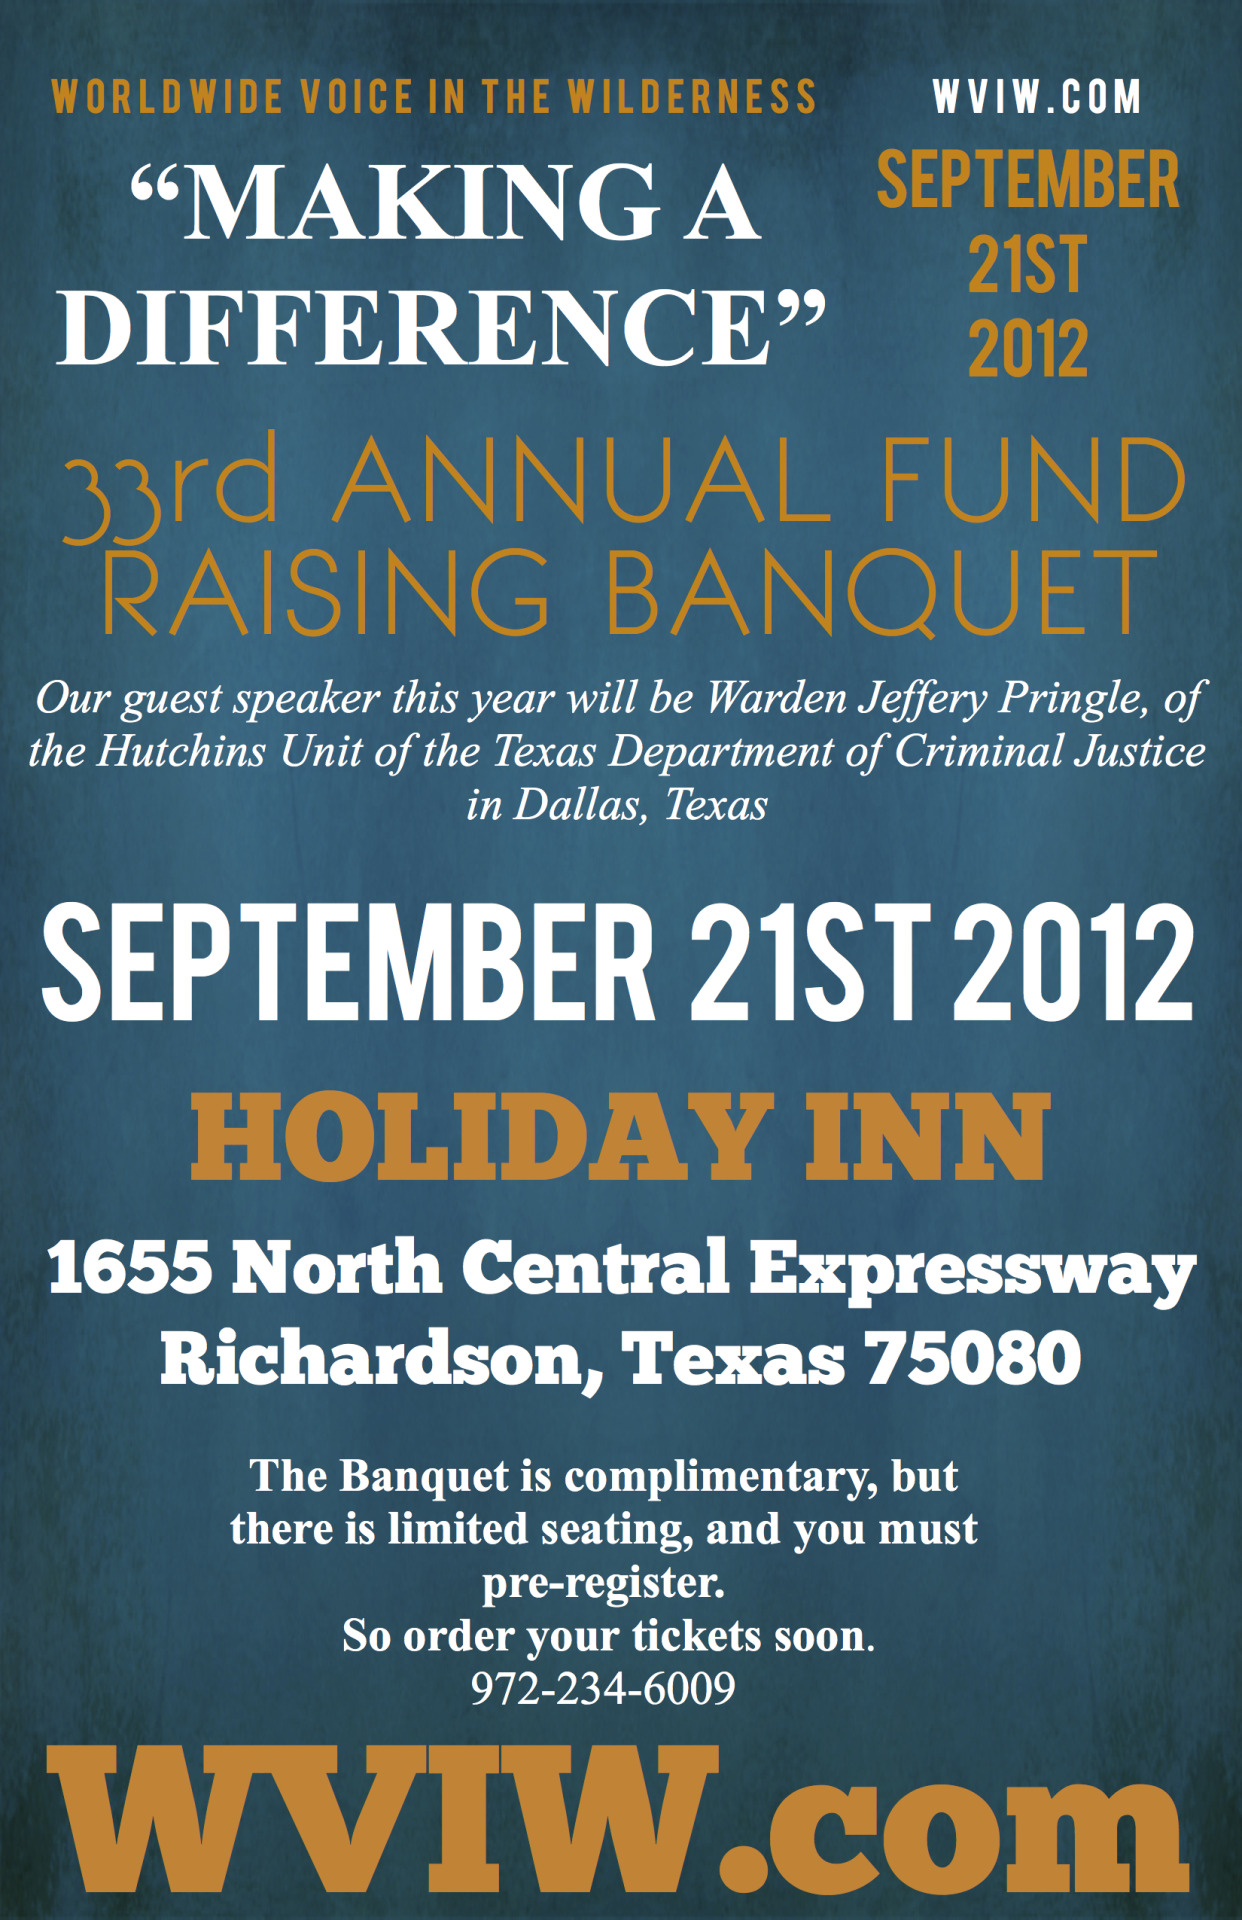 "WVIW Annual Banquet 2012     ""WVIW-MAKING A DIFFERENCE""         33 rd  ANNUAL FUND RAISING  BANQUET          FRIDAY, SEPTEMBER 21, 2012         HOLIDAY INN, RICHARDSON         1655 North Central Expressway         Richardson, Texas 75080                Warden Jeffery Pringle, of the Hutchins Unit of the Texas Department of Criminal Justice in Dallas, Texas, will be our guest speaker.  Warden Pringle has stated,   ""I am not a prison warden who happens to be a Christian; I am a Christian who happens to be a prison warden.""    You do not want to miss this powerful story about how Jesus   ""IS MAKING A DIFFERENCE""   in his life, both inside and outside of prison.               September 21, will be here before we know it.  I hope and pray you are making plans to be with us.  Information can be found on our web site,     www.wviw.com    .                 Again this year the Celebration  Banquet  is complimentary.  But, there is limited seating, and you must pre-register.  So order your tickets soon    .               Please consider sponsoring one or more tables at $500.00 each.  Or, perhaps you could sponsor one or more couples for $100.00 each.  God may impress on you to be a  ""CONQUERORS""  sponsor for a gift of $1,000.   Whatever the size of your gift, please help us with a sponsorship today.                  We look forward to seeing you at  ""The WVIW-MAKING A DIFFERENCE""  Fundraising  Banquet .""  Please confirm your attendance by filling out the ONLINE response form by September 17, 2012.  You may also register by email at   johnnymoffitt@wviw.com   .               Again, there is no cost to attend; however, we will be asking you to prayerfully consider becoming a partner with us in taking the Gospel to prisoners and the forgotten and neglected peoples around the world.  For more information go to our web site, www.wviw.com , or call  972-234-6009 .               Your Servant,               Johnny Moffitt, D.Min.       Director"